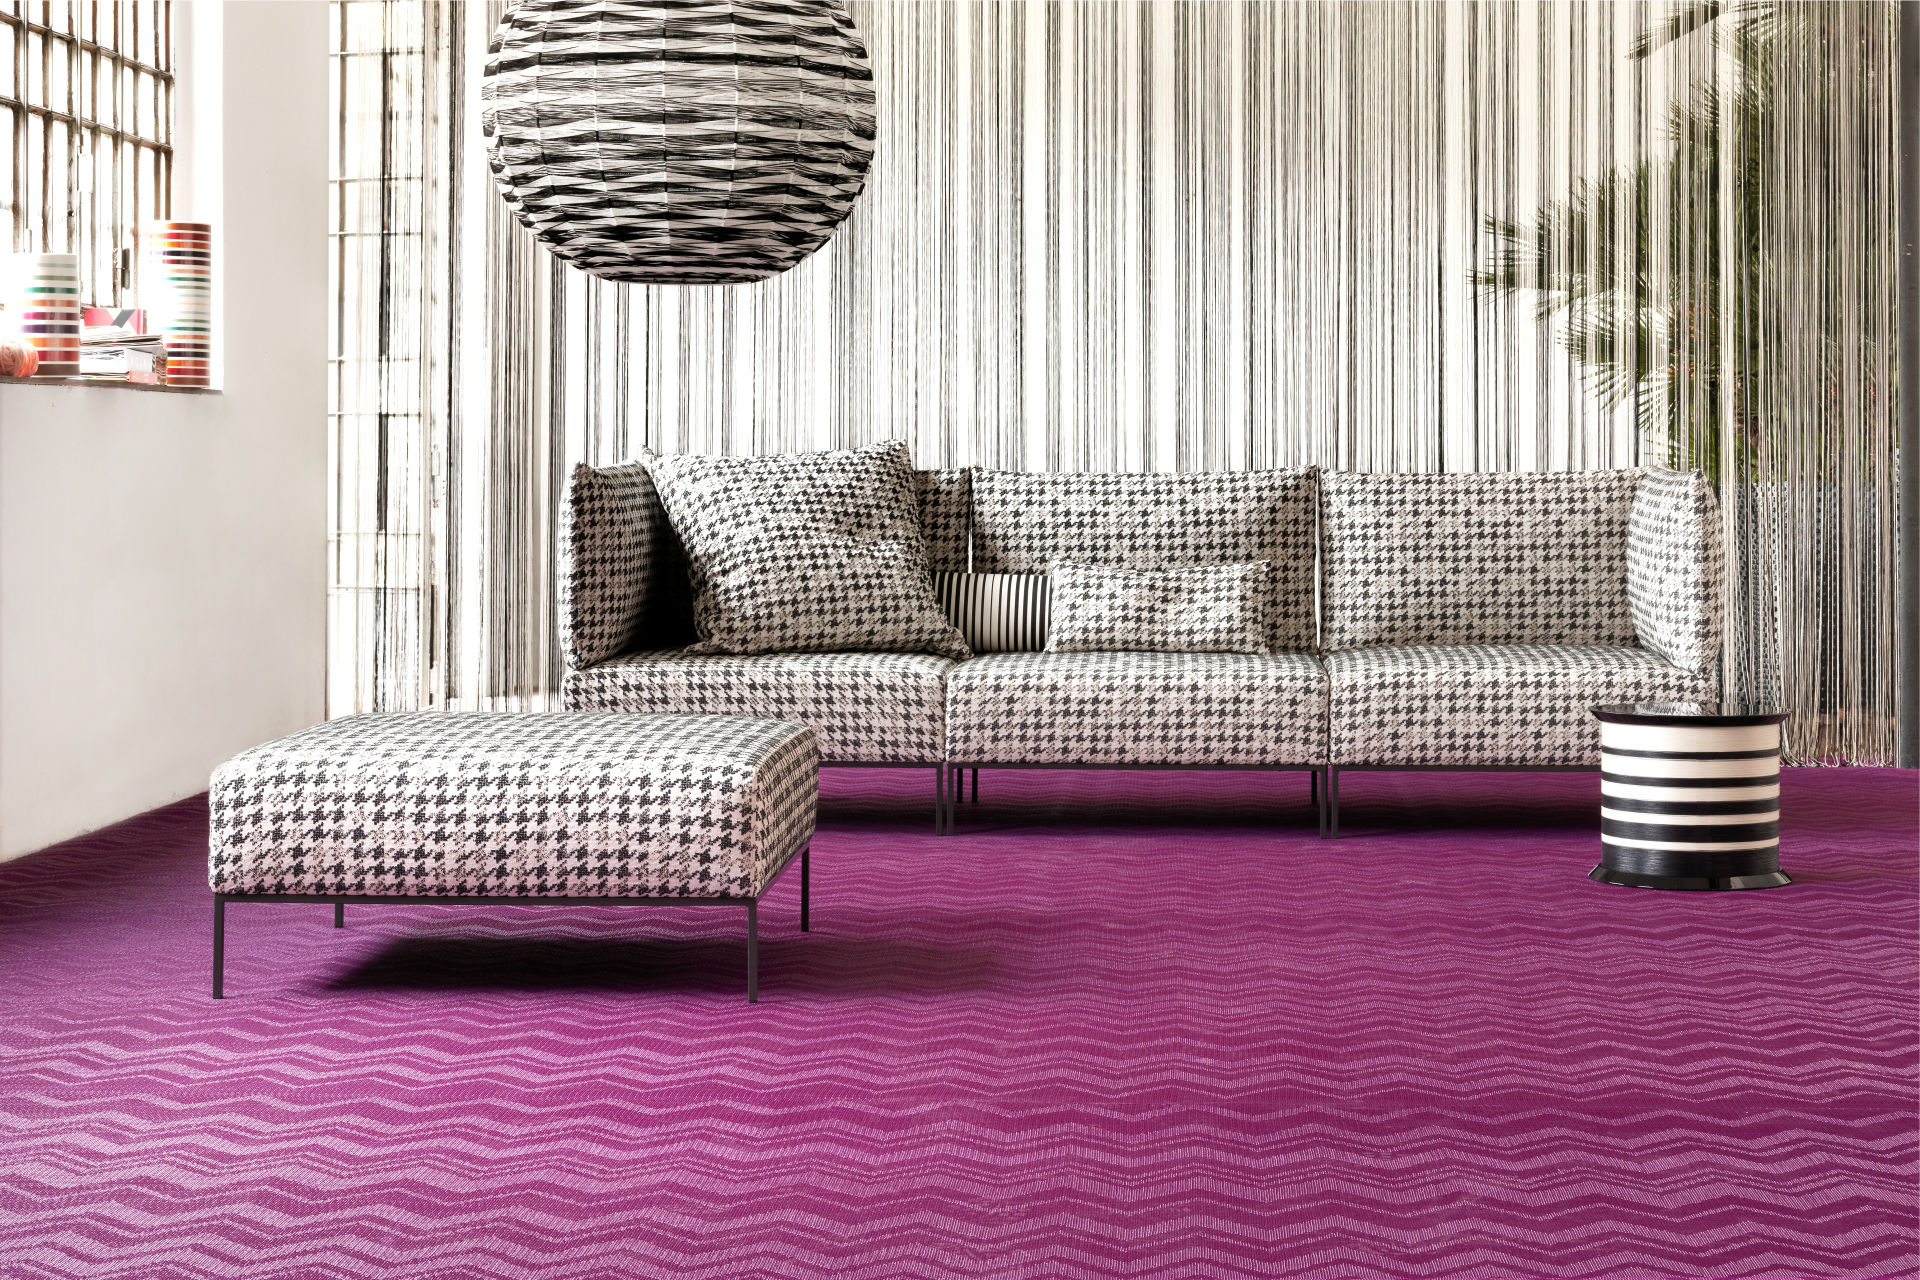 Bolon by Missoni ZigZag